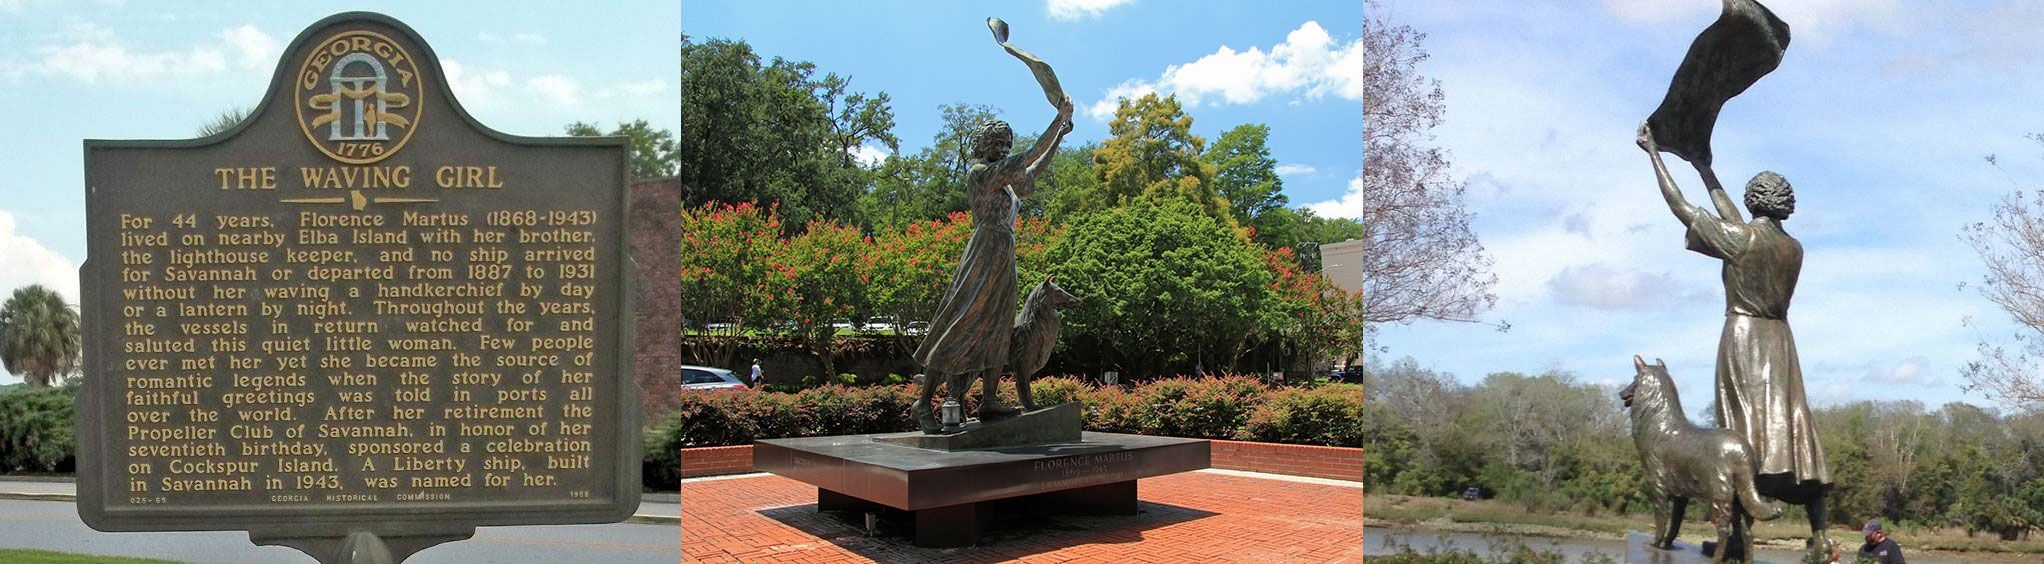 The Waving Girl Statue